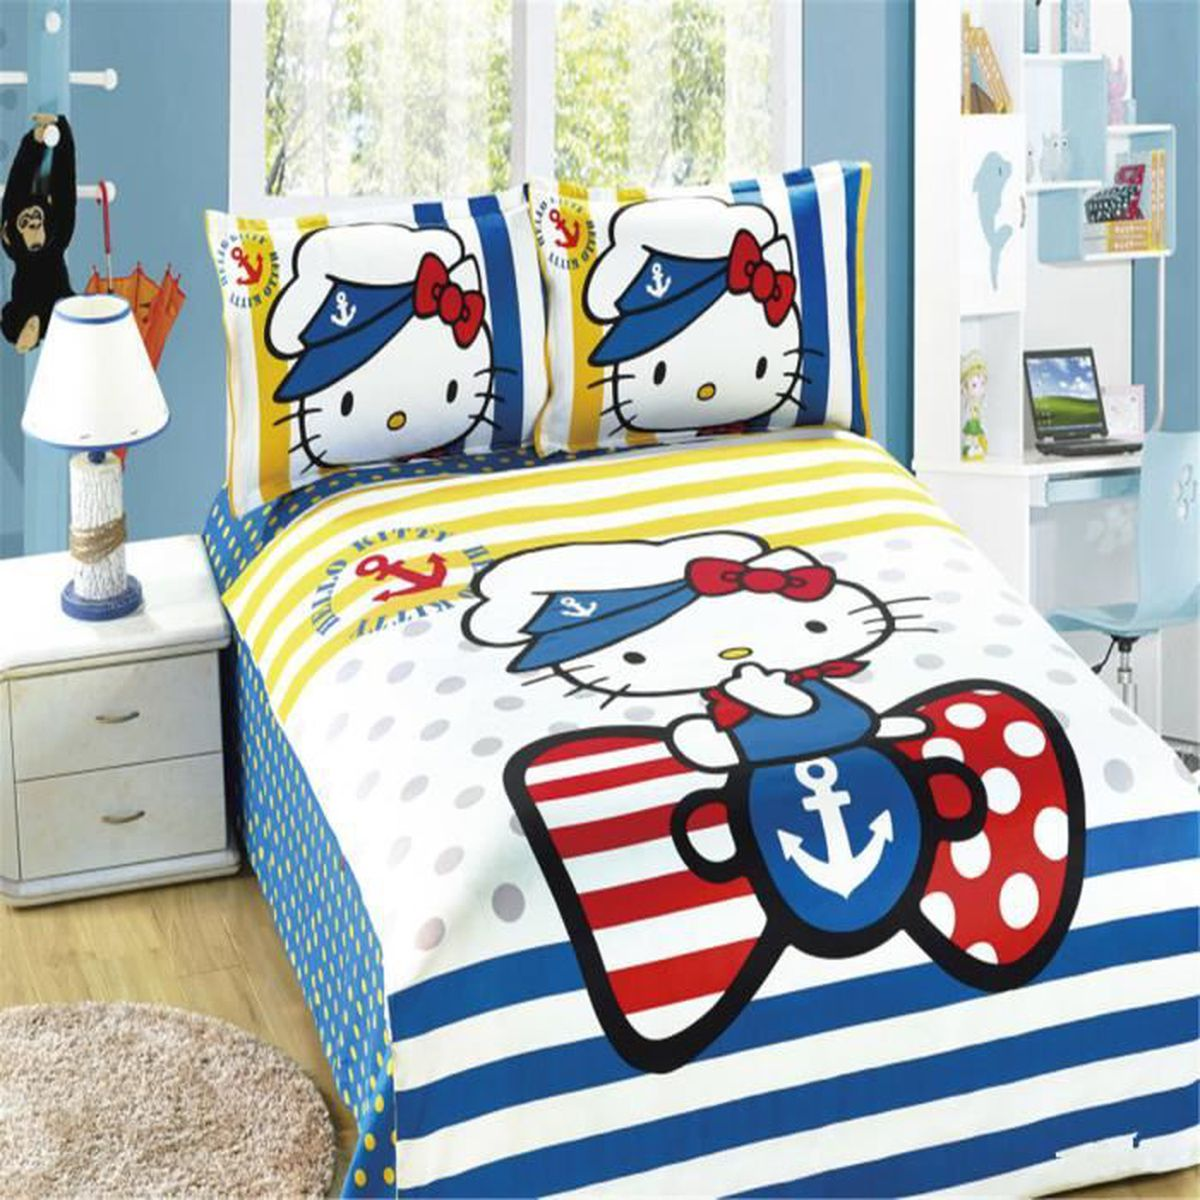 parure de lit parure de couette hello kitty enfant 100 coton 1 housse de couette 140x200cm 1. Black Bedroom Furniture Sets. Home Design Ideas